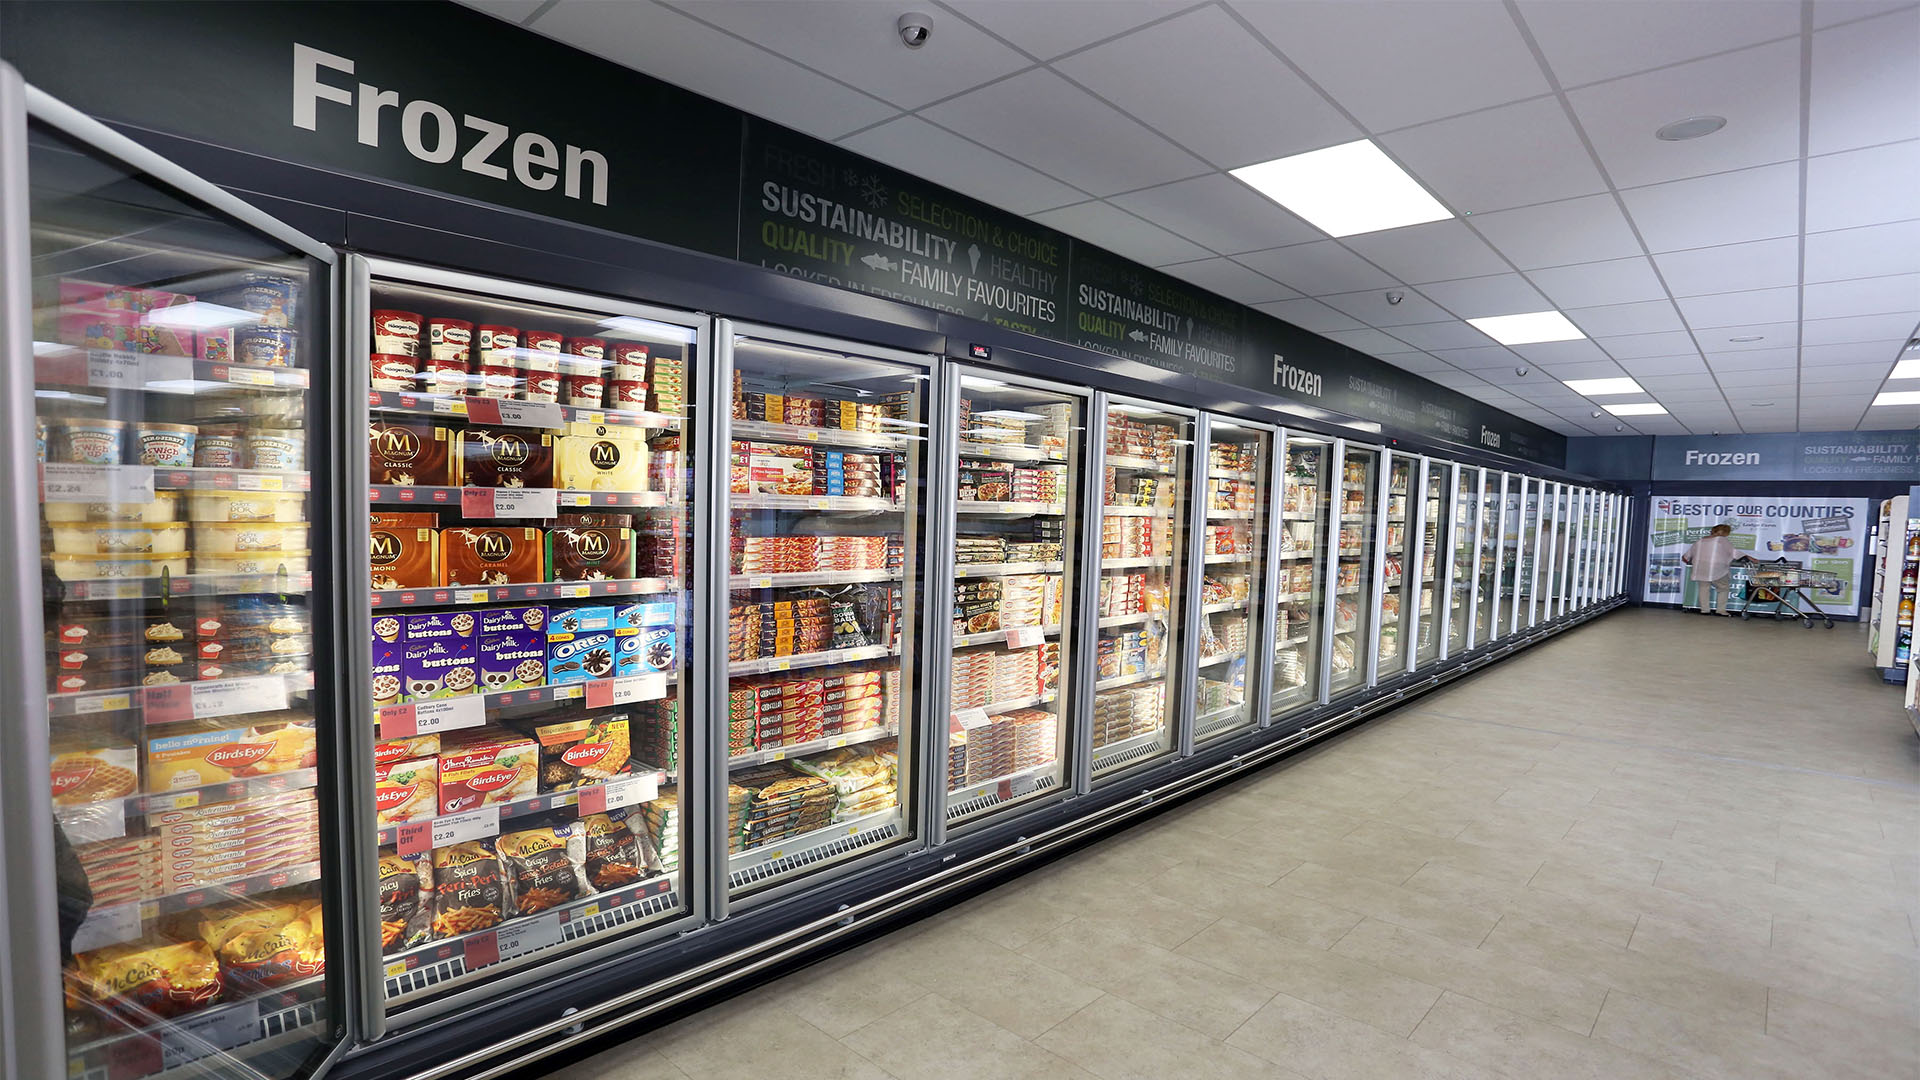 Midcounties Co-operative Frozen Aisle